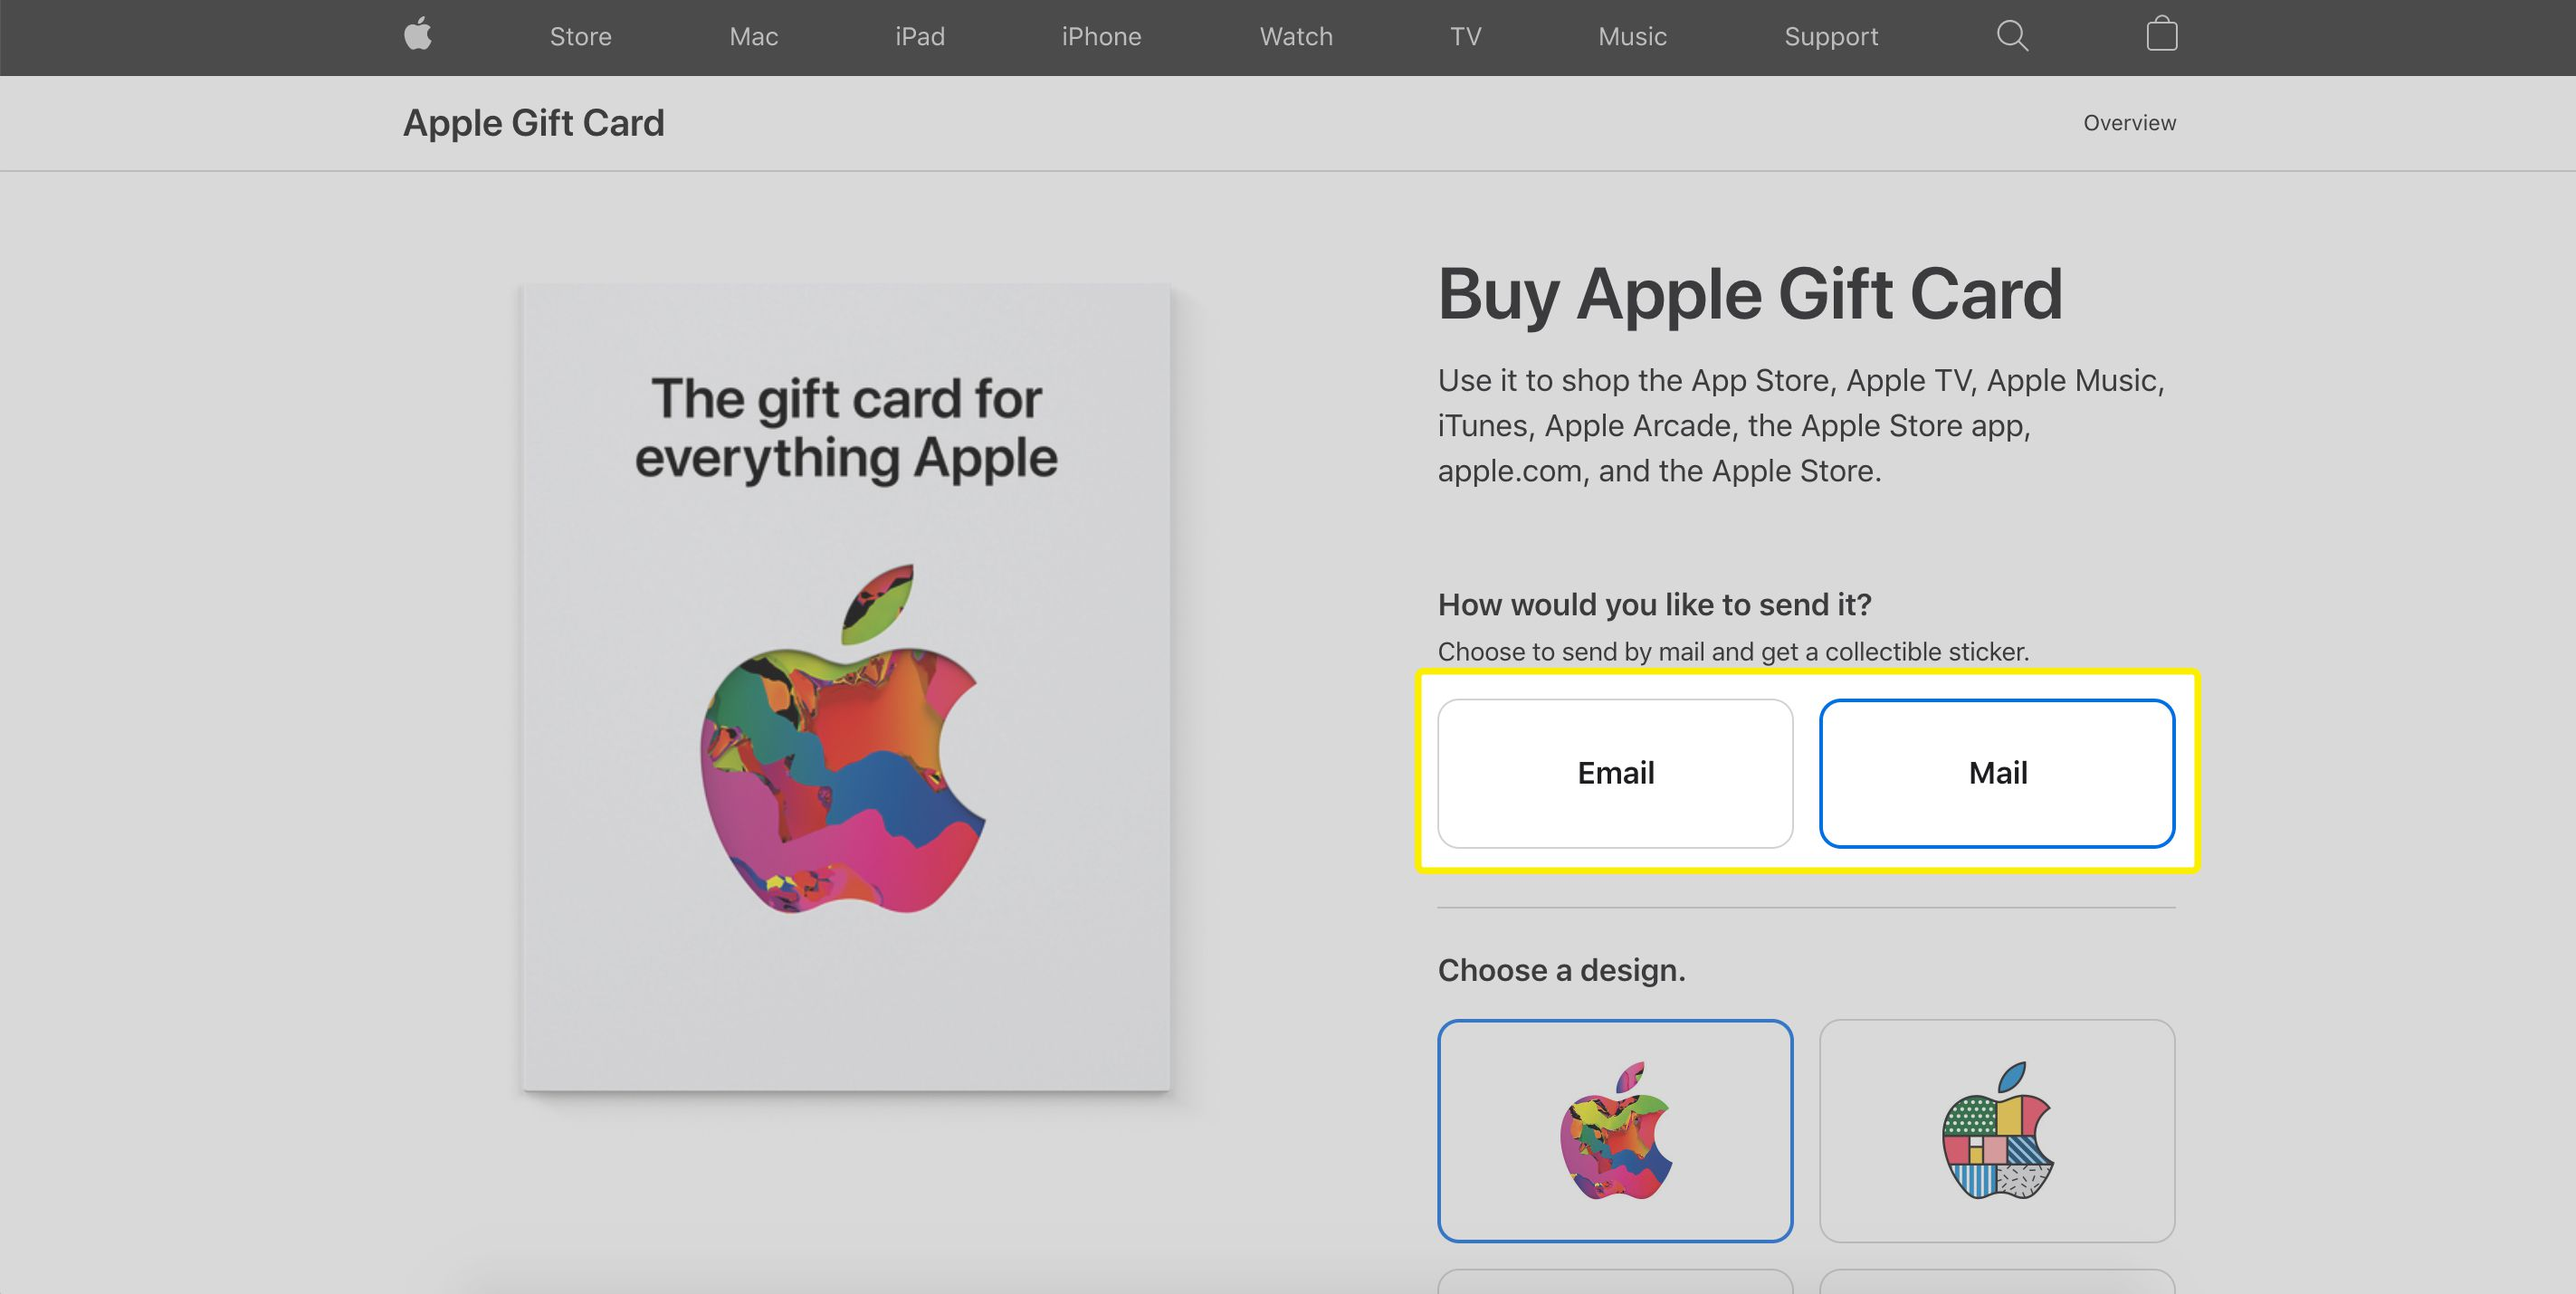 Apple gift card email or mail